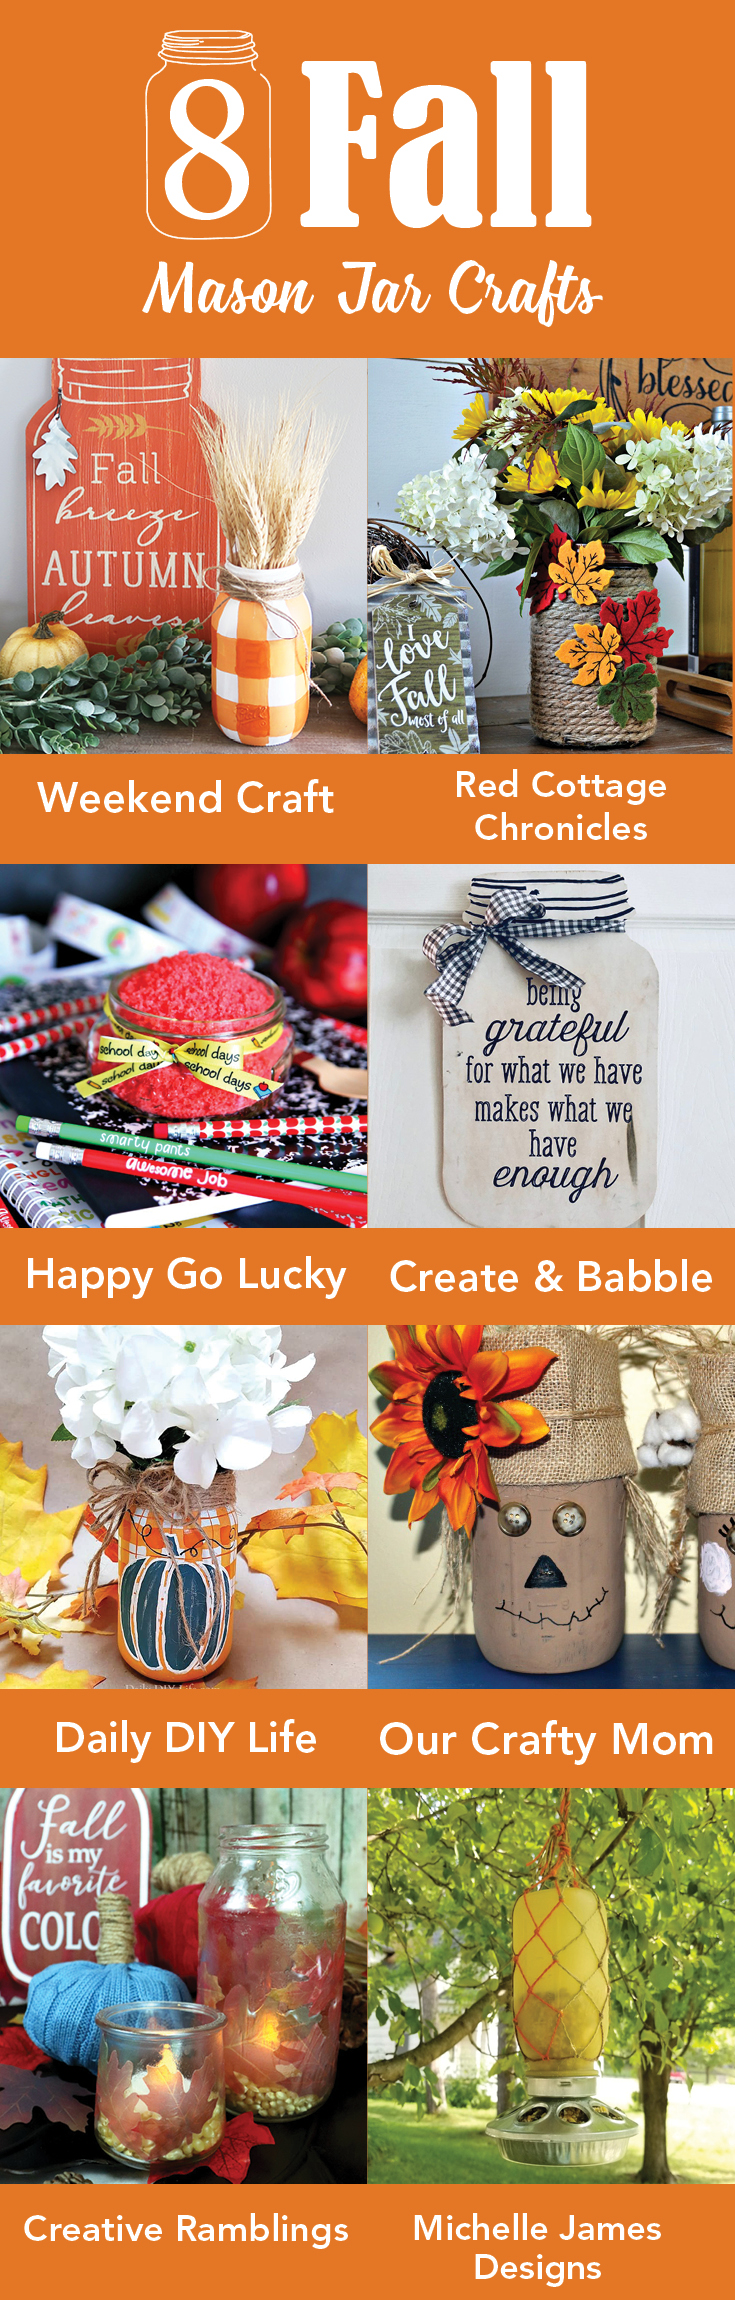 8 Fall Mason Jar Craft Ideas